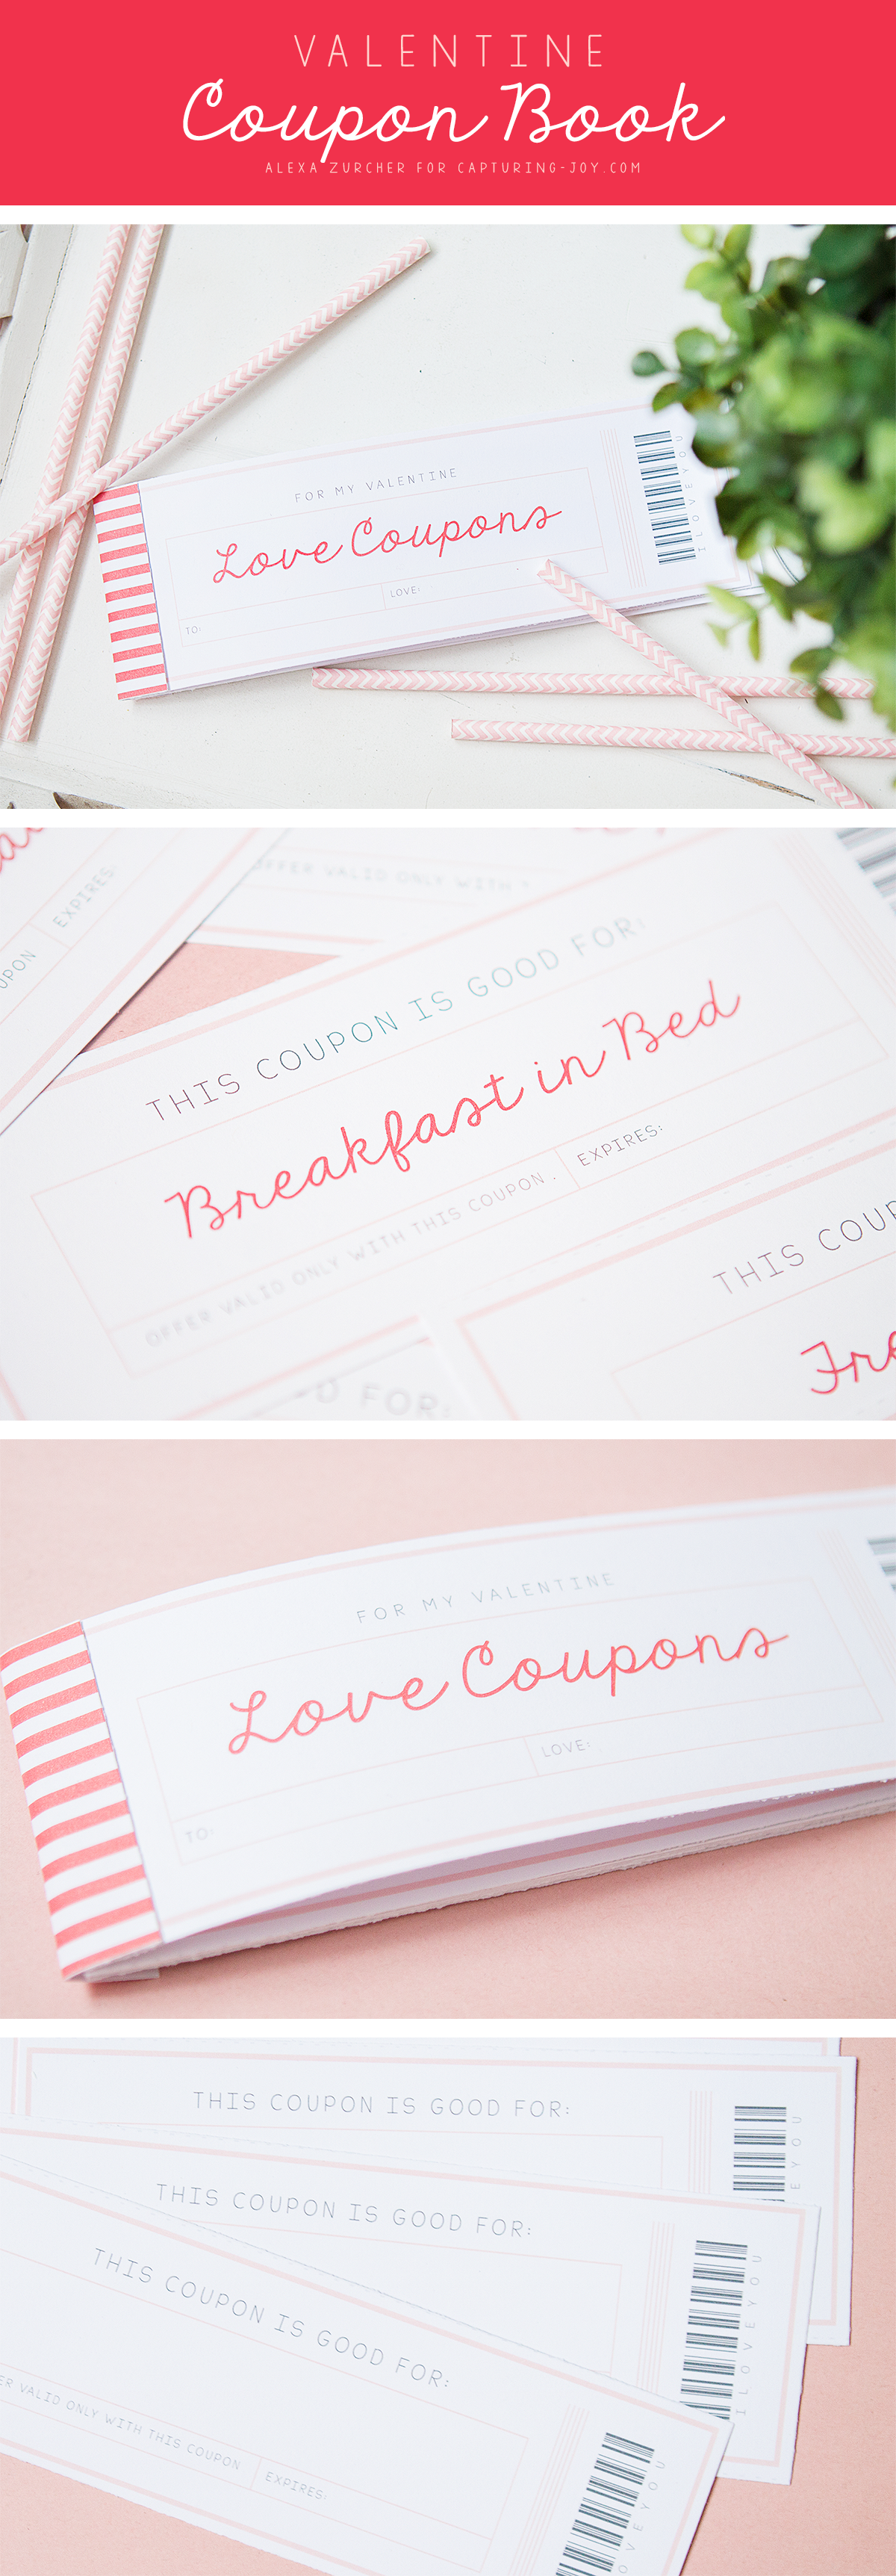 valentine coupon book printable 2